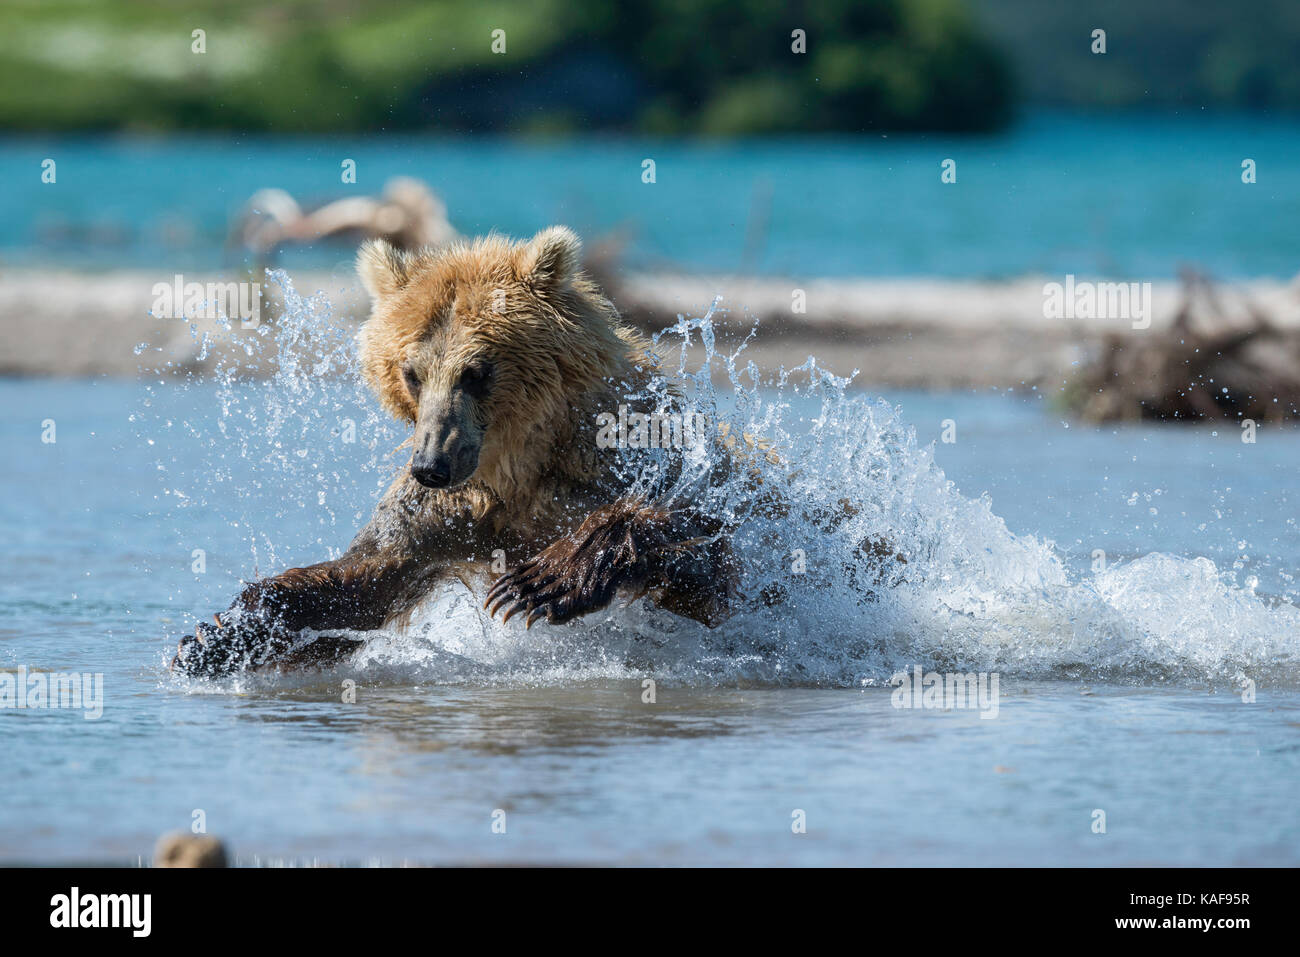 Brown bear pouncing on sockeye salmon, Kamchatka, Russia. - Stock Image